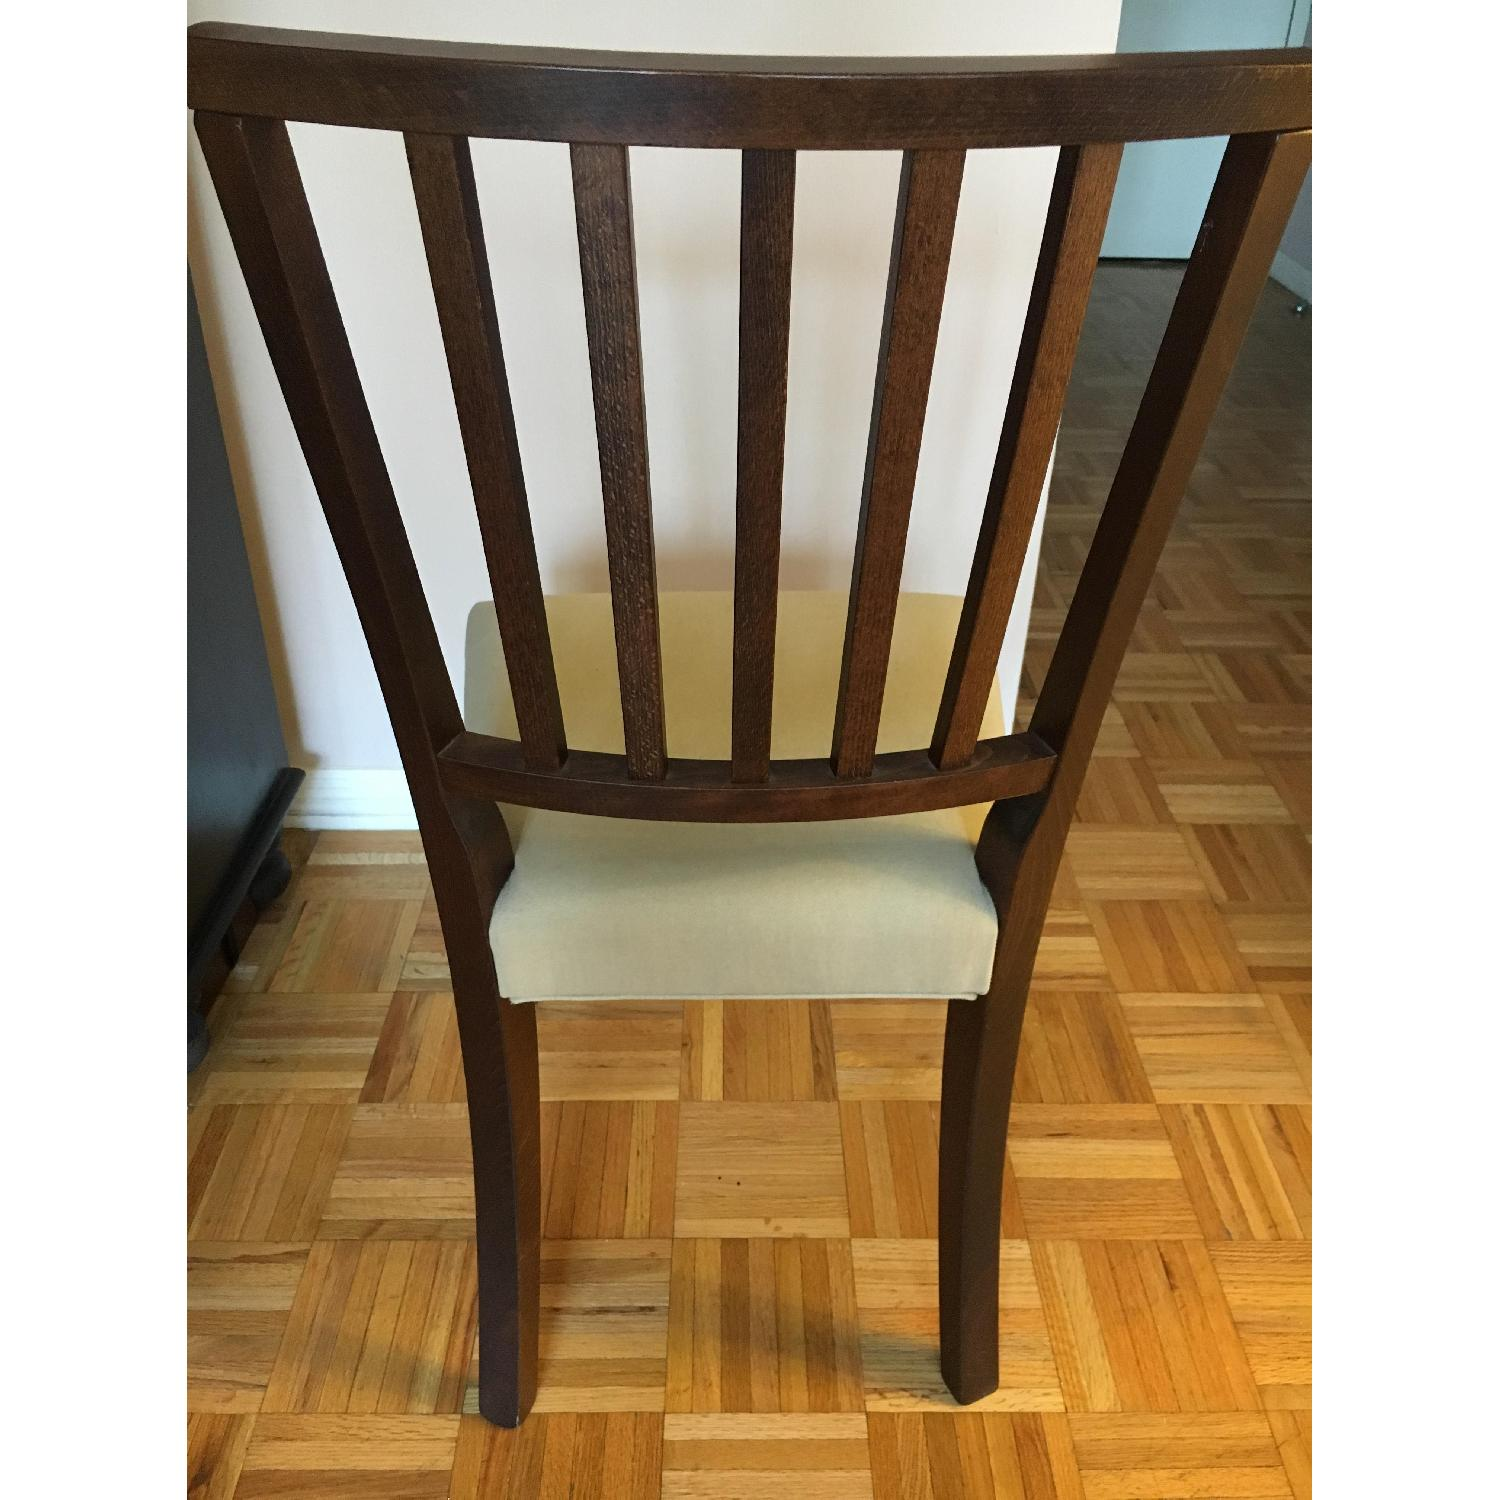 Pottery Barn Dining Chairs - image-3